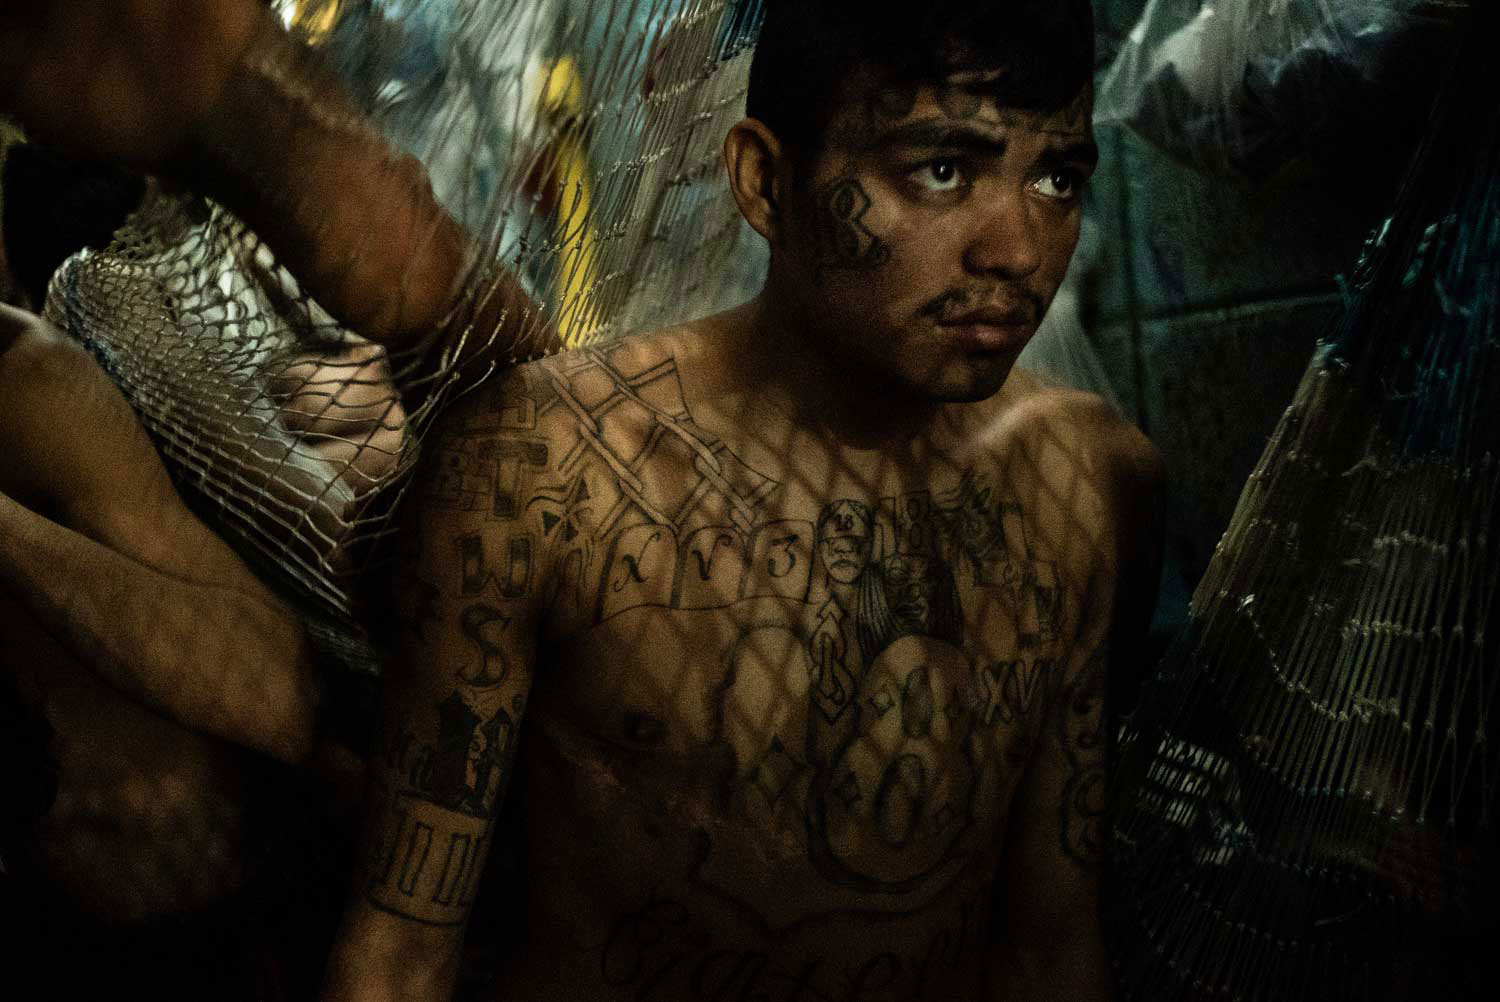 A cell inmate in the district of Soyapango, municipality in San Salvador, where police conducted a night raid in search of Mara Salvatrucha gang's members. Alleged gang members are handcuffed, identified, and then put into the barltolina, an overcrowded temporary cell at police headquarters.